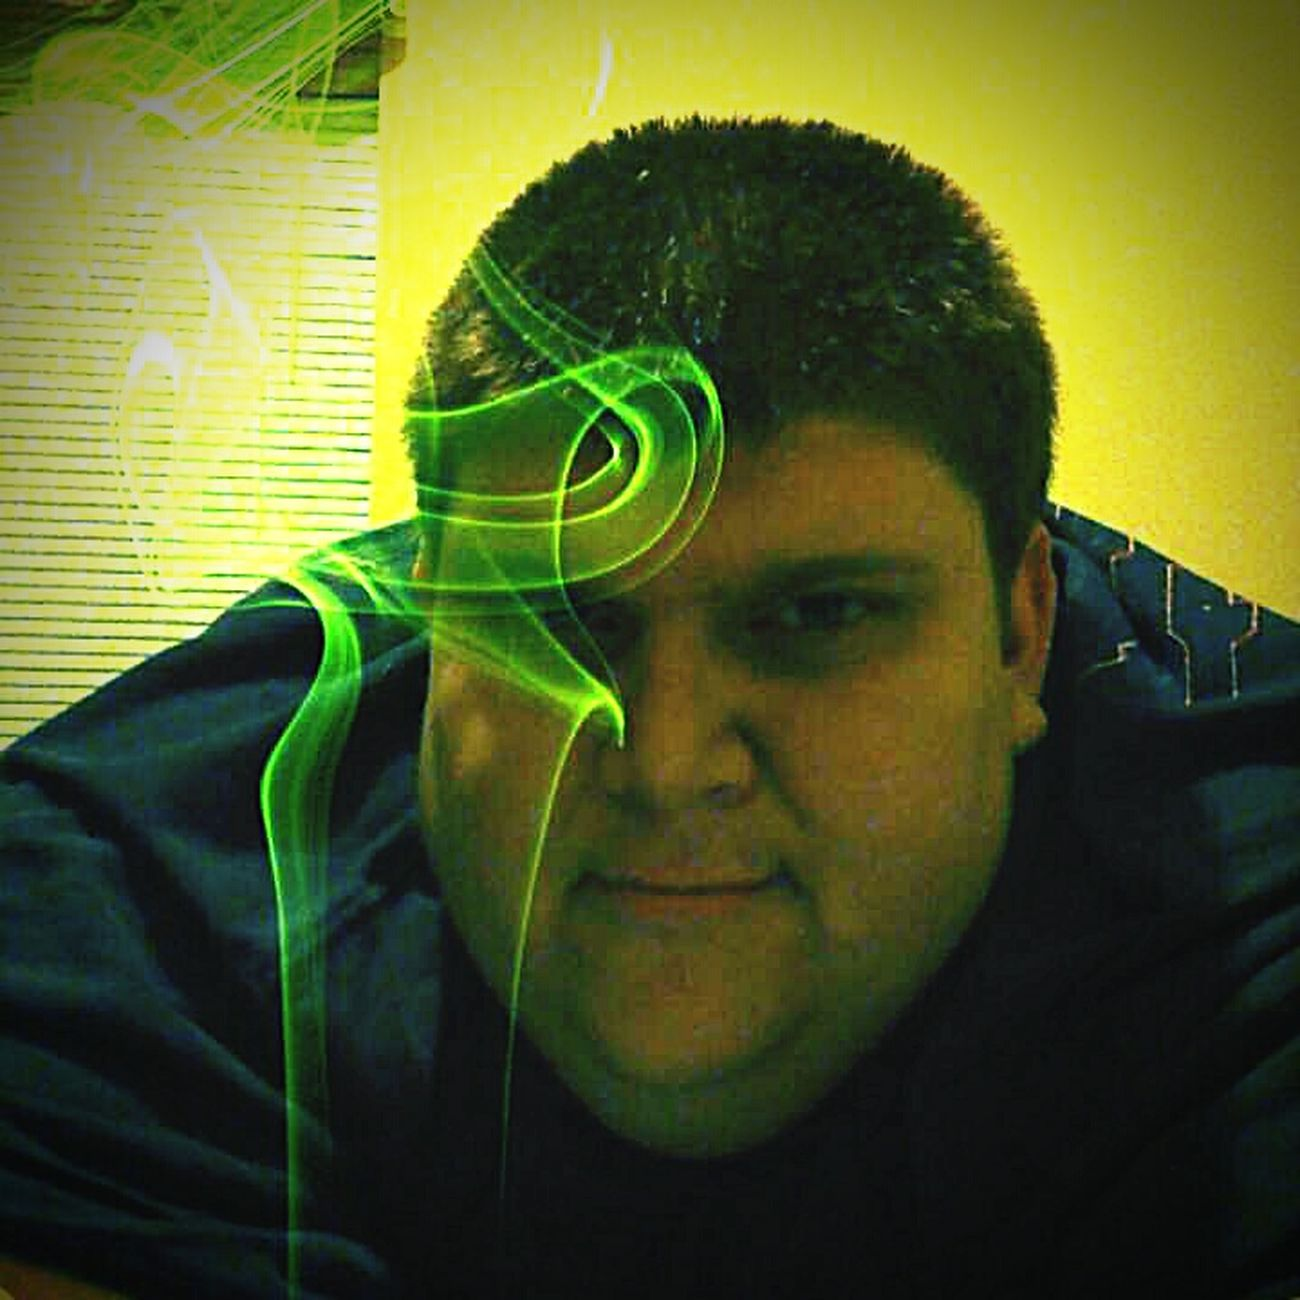 Matterifics World Of Wonders Matterificly Mistified Matterificly You Matterificly You Dude Green Smoke Of Wonders Boys Check This Out Hanging Out That's Me Hello World